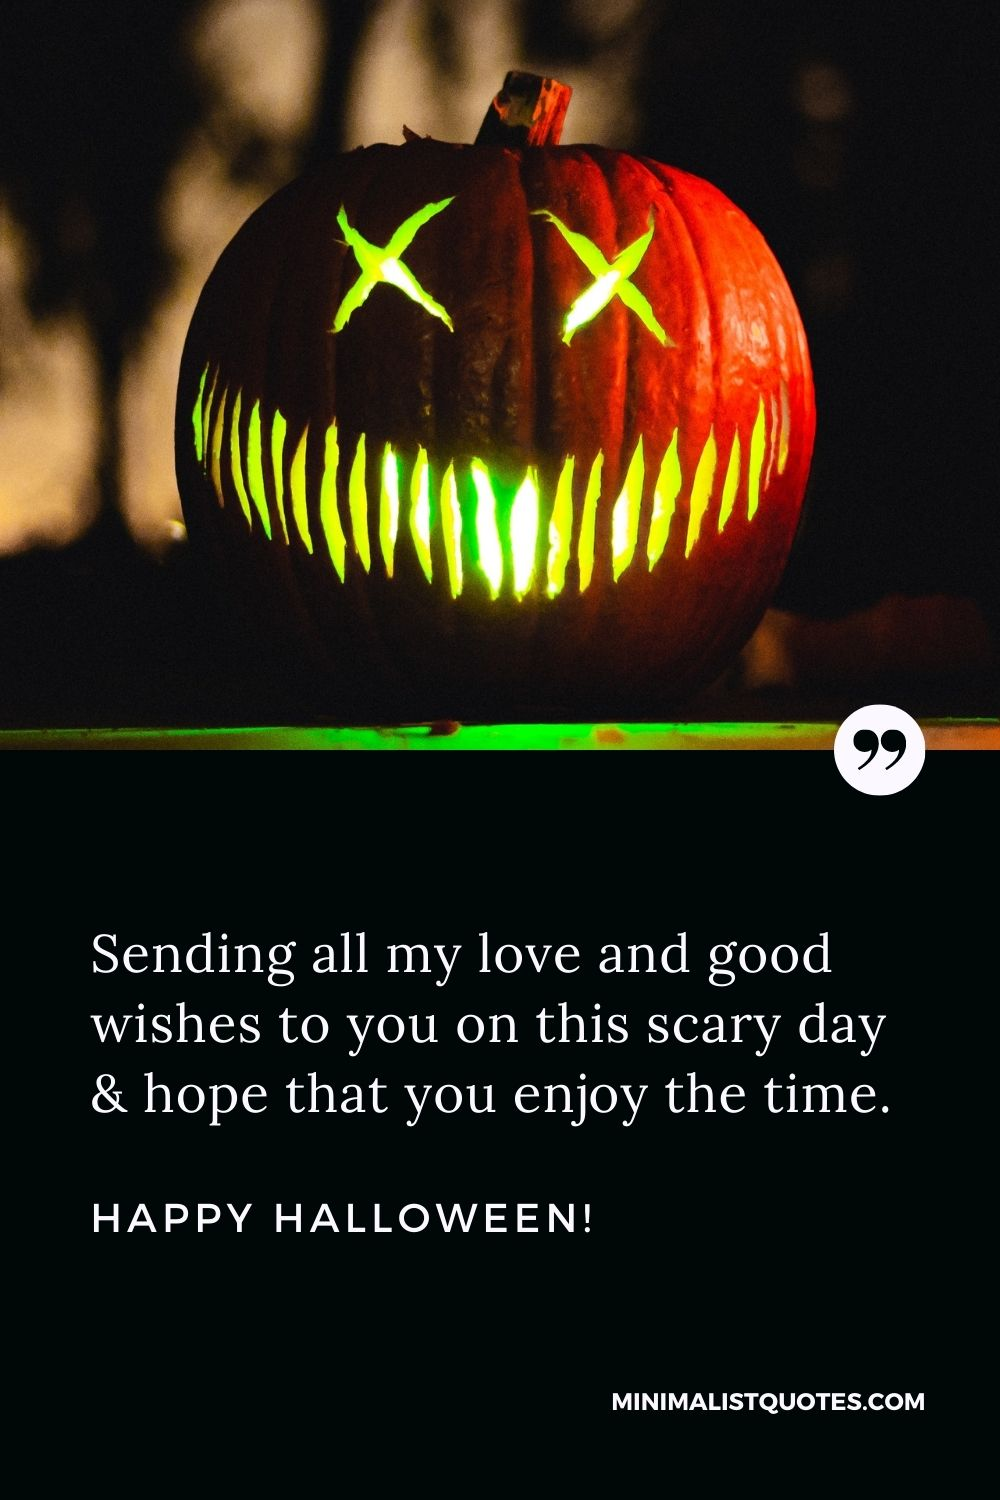 Happy Halloween Wishes - Sending all my love and good wishes to you on this scary day & hope that you enjoy the time.